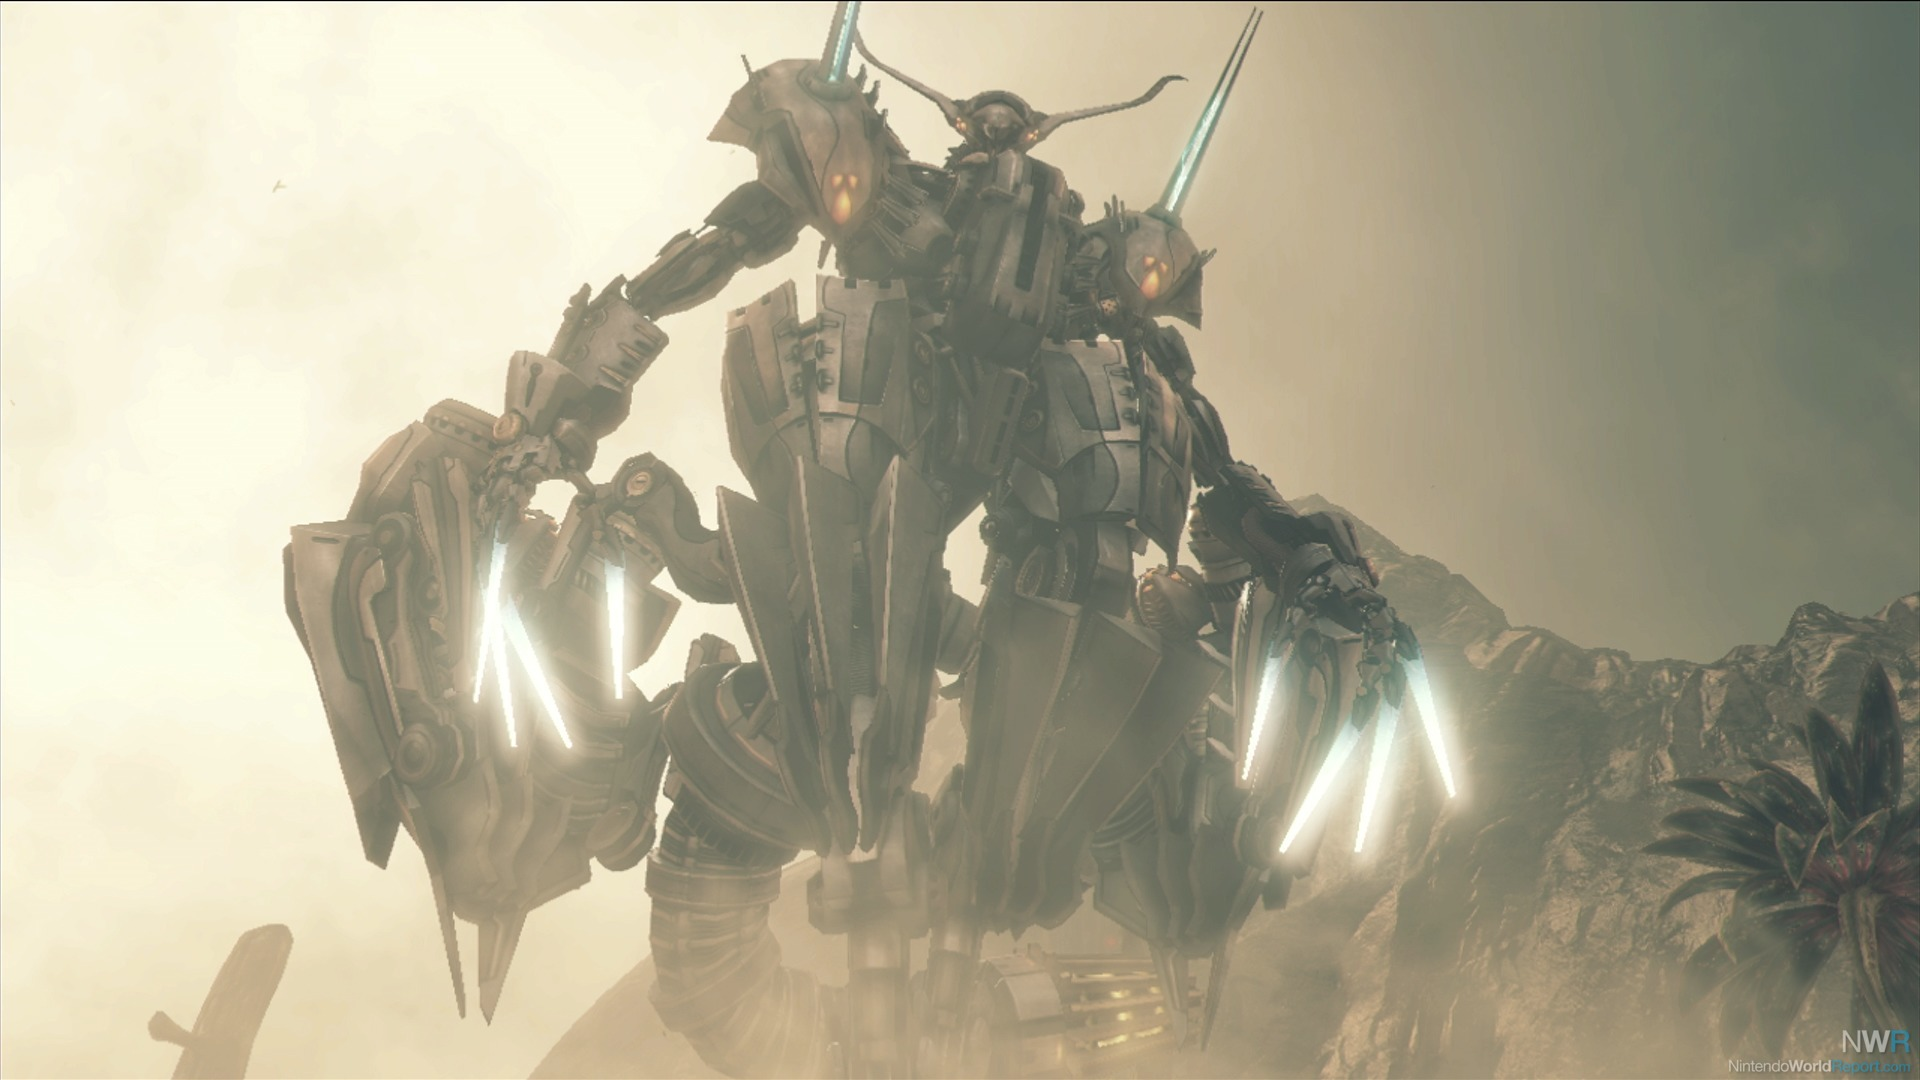 Xenoblade chronicles x gets limited editions wii download of xenoblade chronicles x gets limited editions wii download of original in europeaustralia news nintendo world report gumiabroncs Choice Image